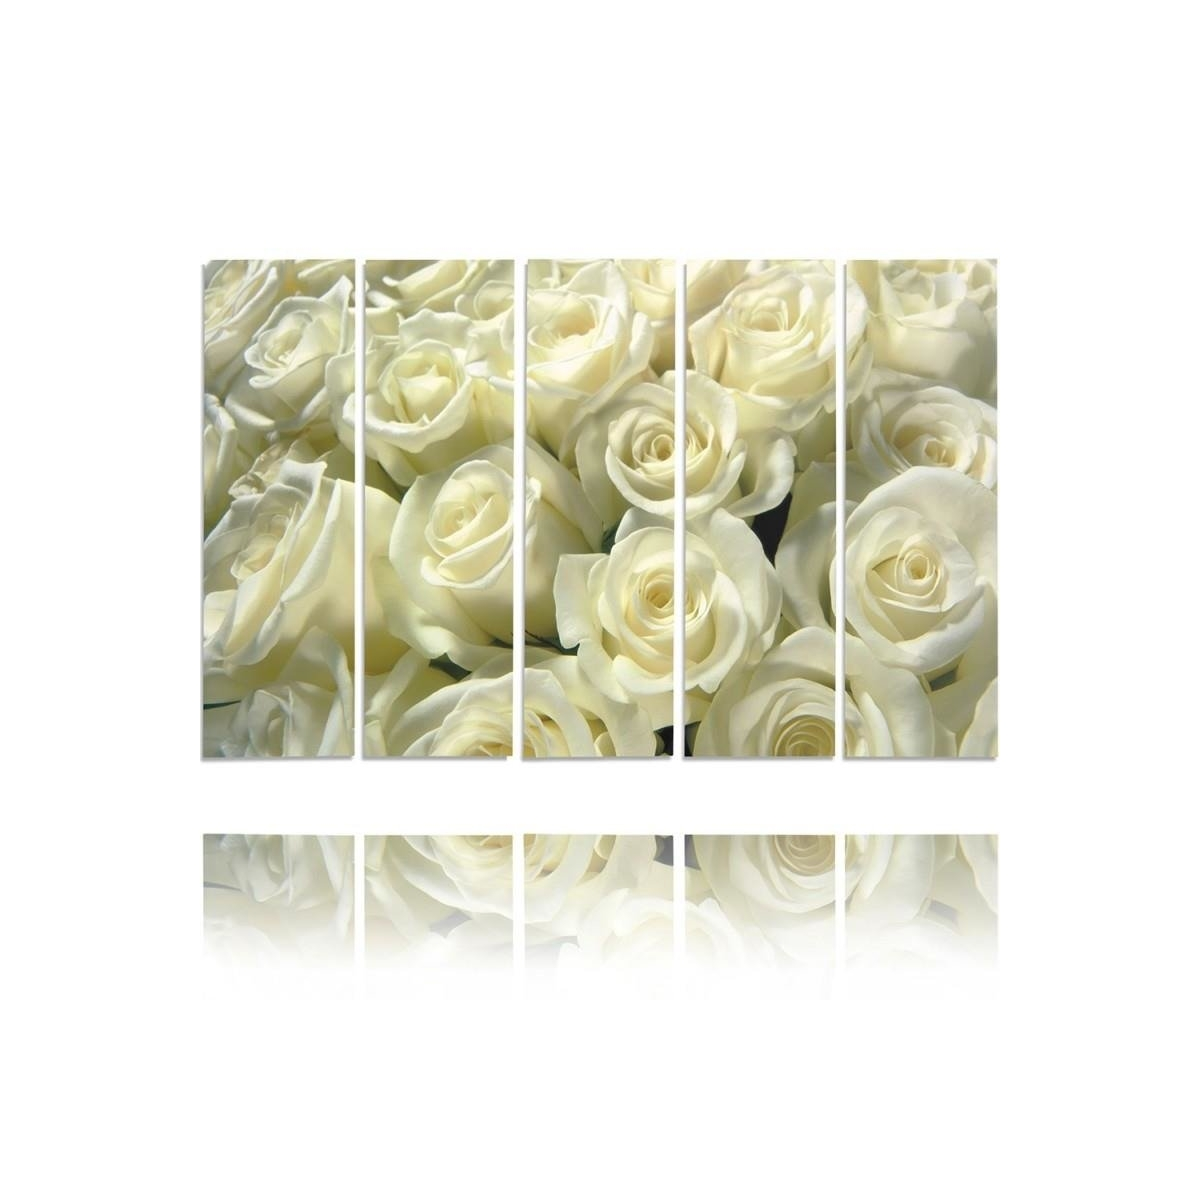 Five Part Picture On Canvas, Pentaptych, Type C, White Roses 100x150